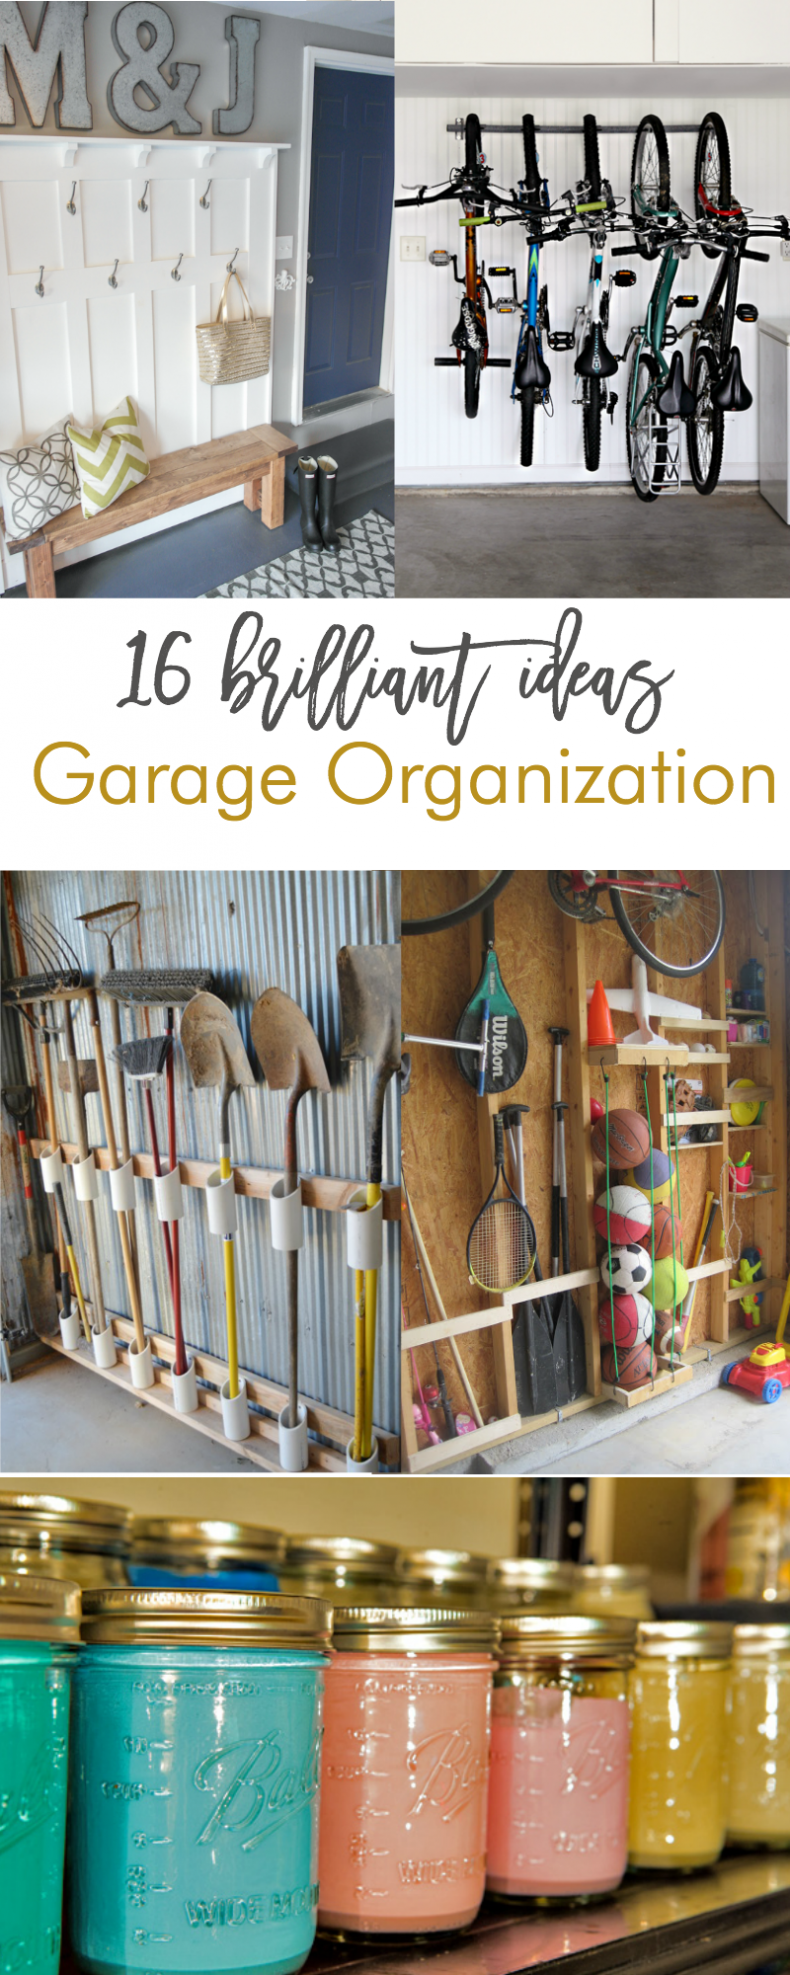 16 brilliant diy garage organization ideas for Garage building ideas